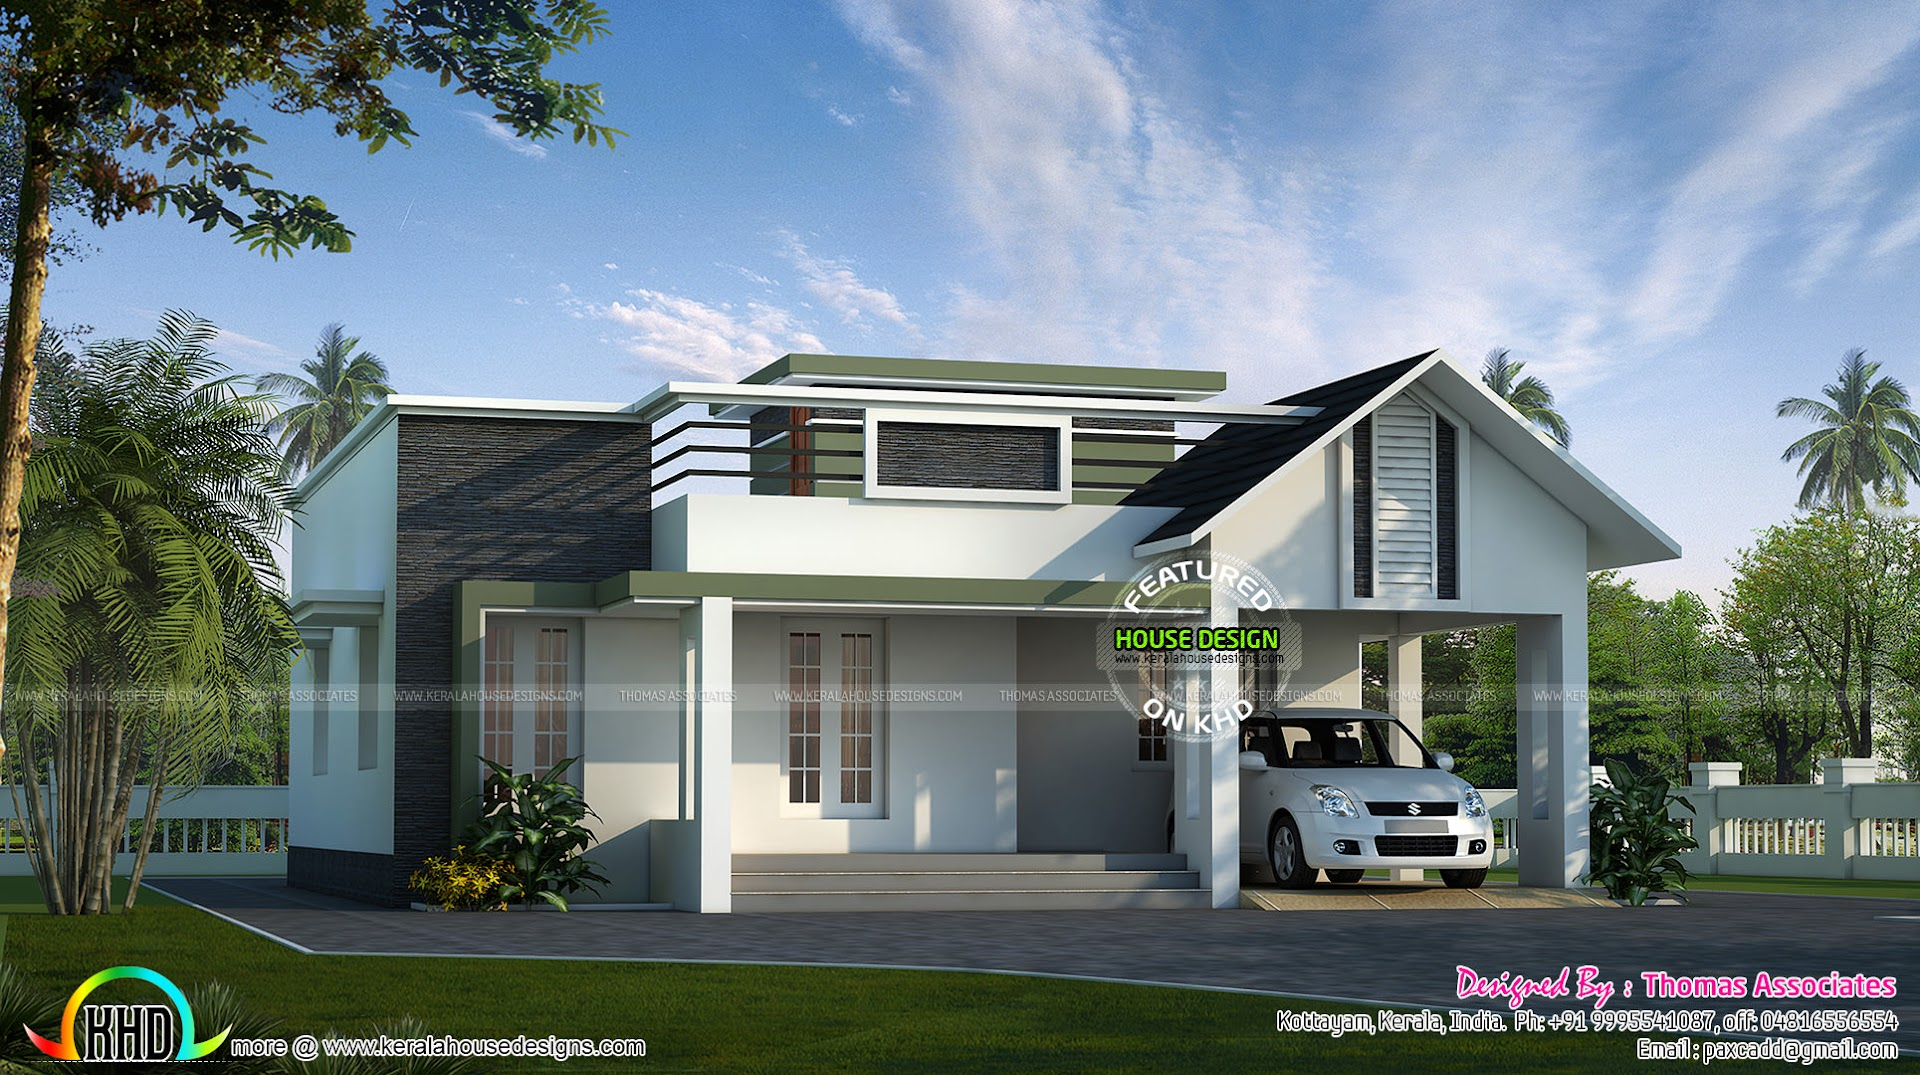 Small simple 1200 sq ft house kerala home design and for 1200 square foot house